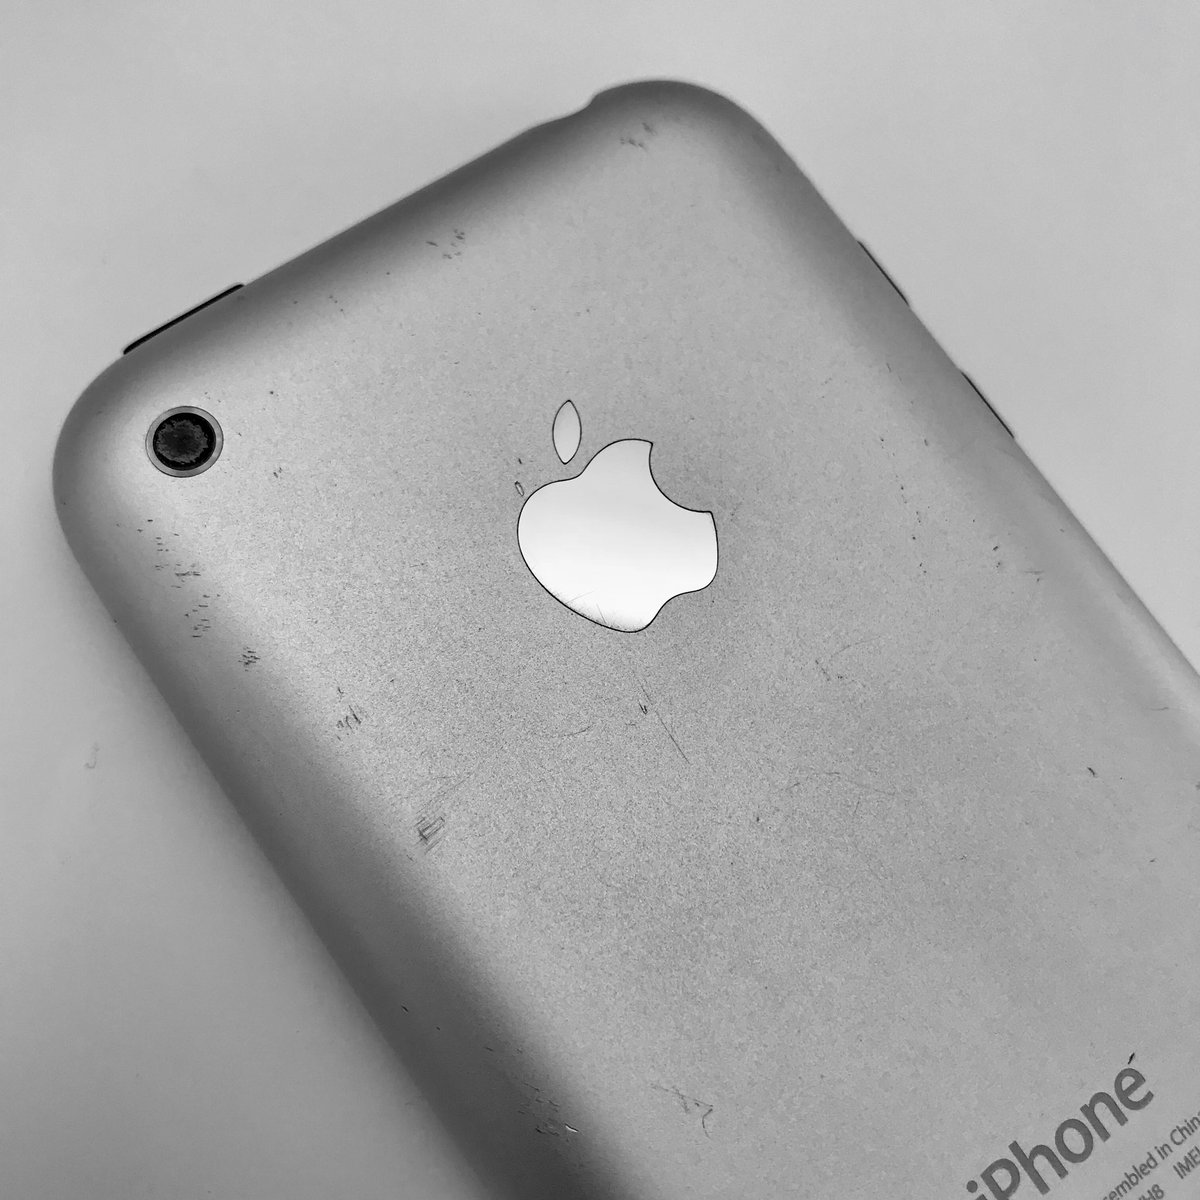 10 years of #iPhone ❤️ https://t.co/aLaZdis6OJ